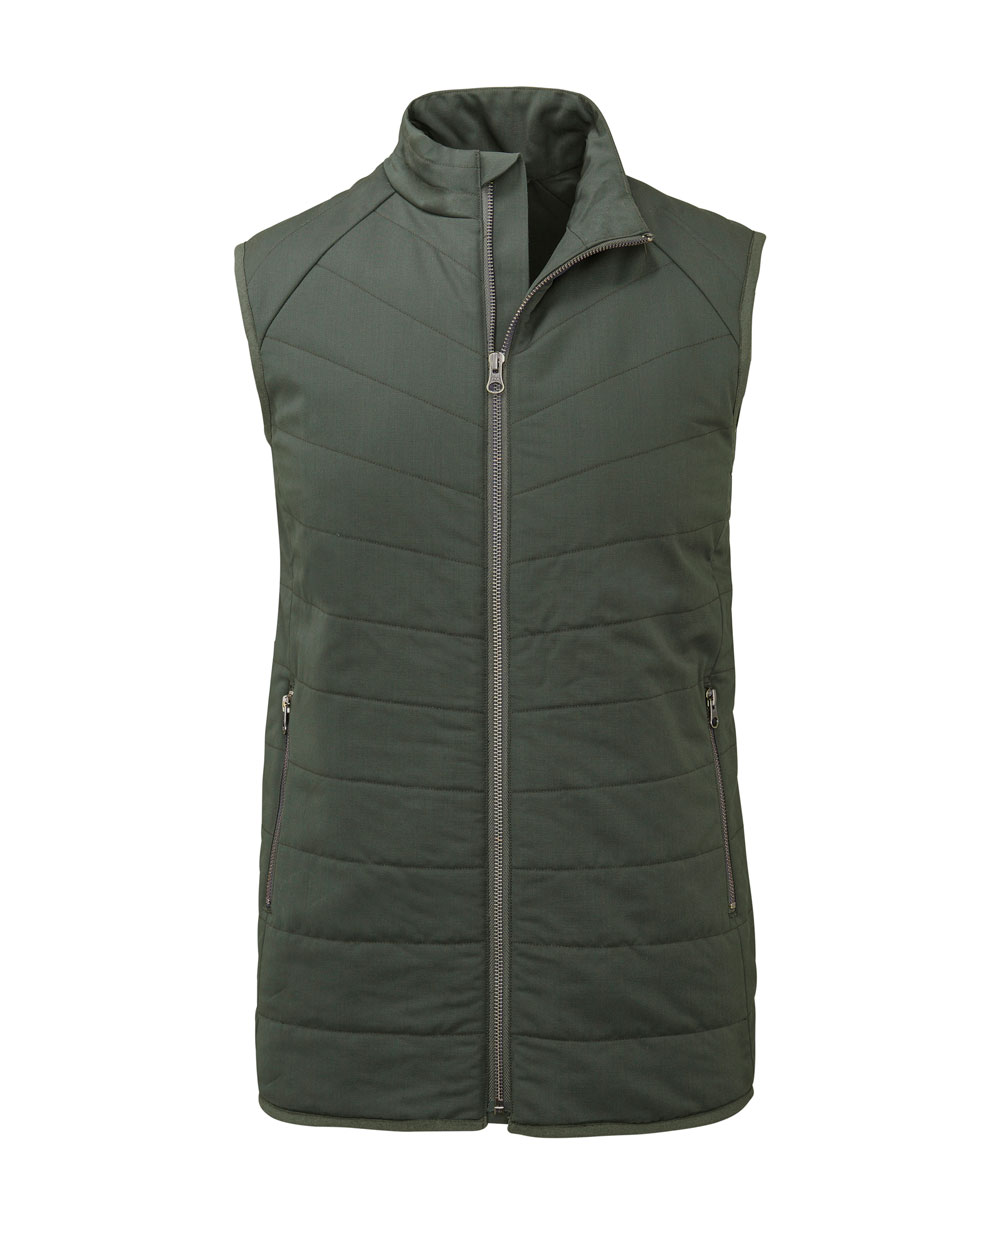 Shop for Men's Merino Jackets